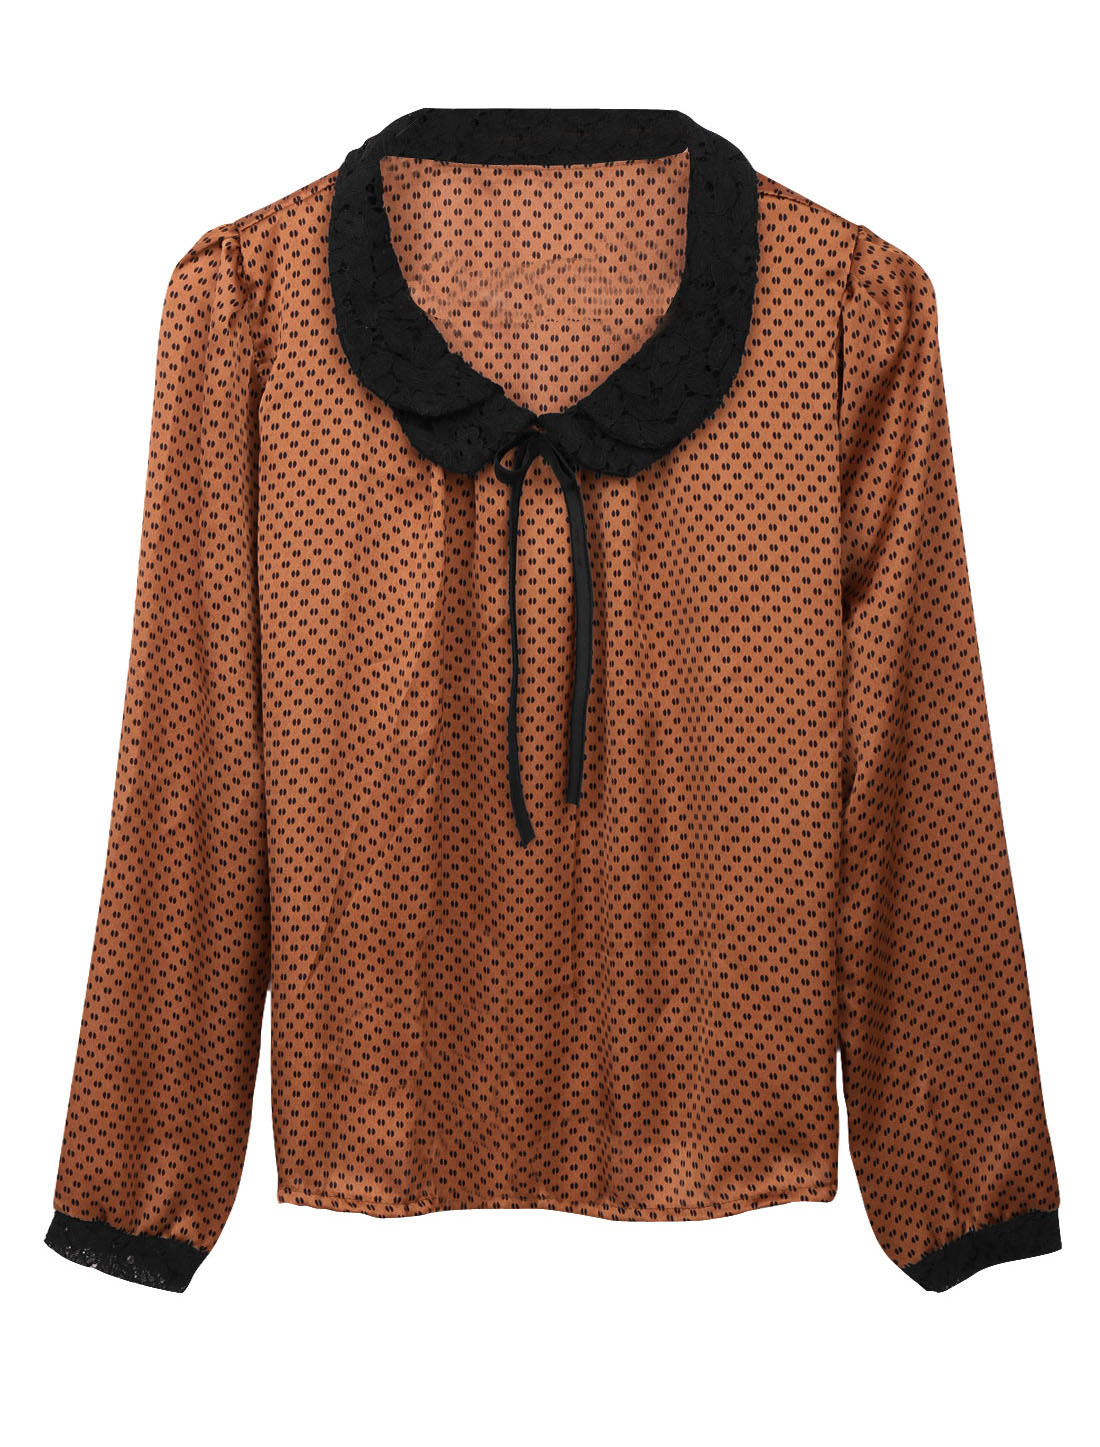 Ladies Brown Irregular Dots Pattern Blouse S